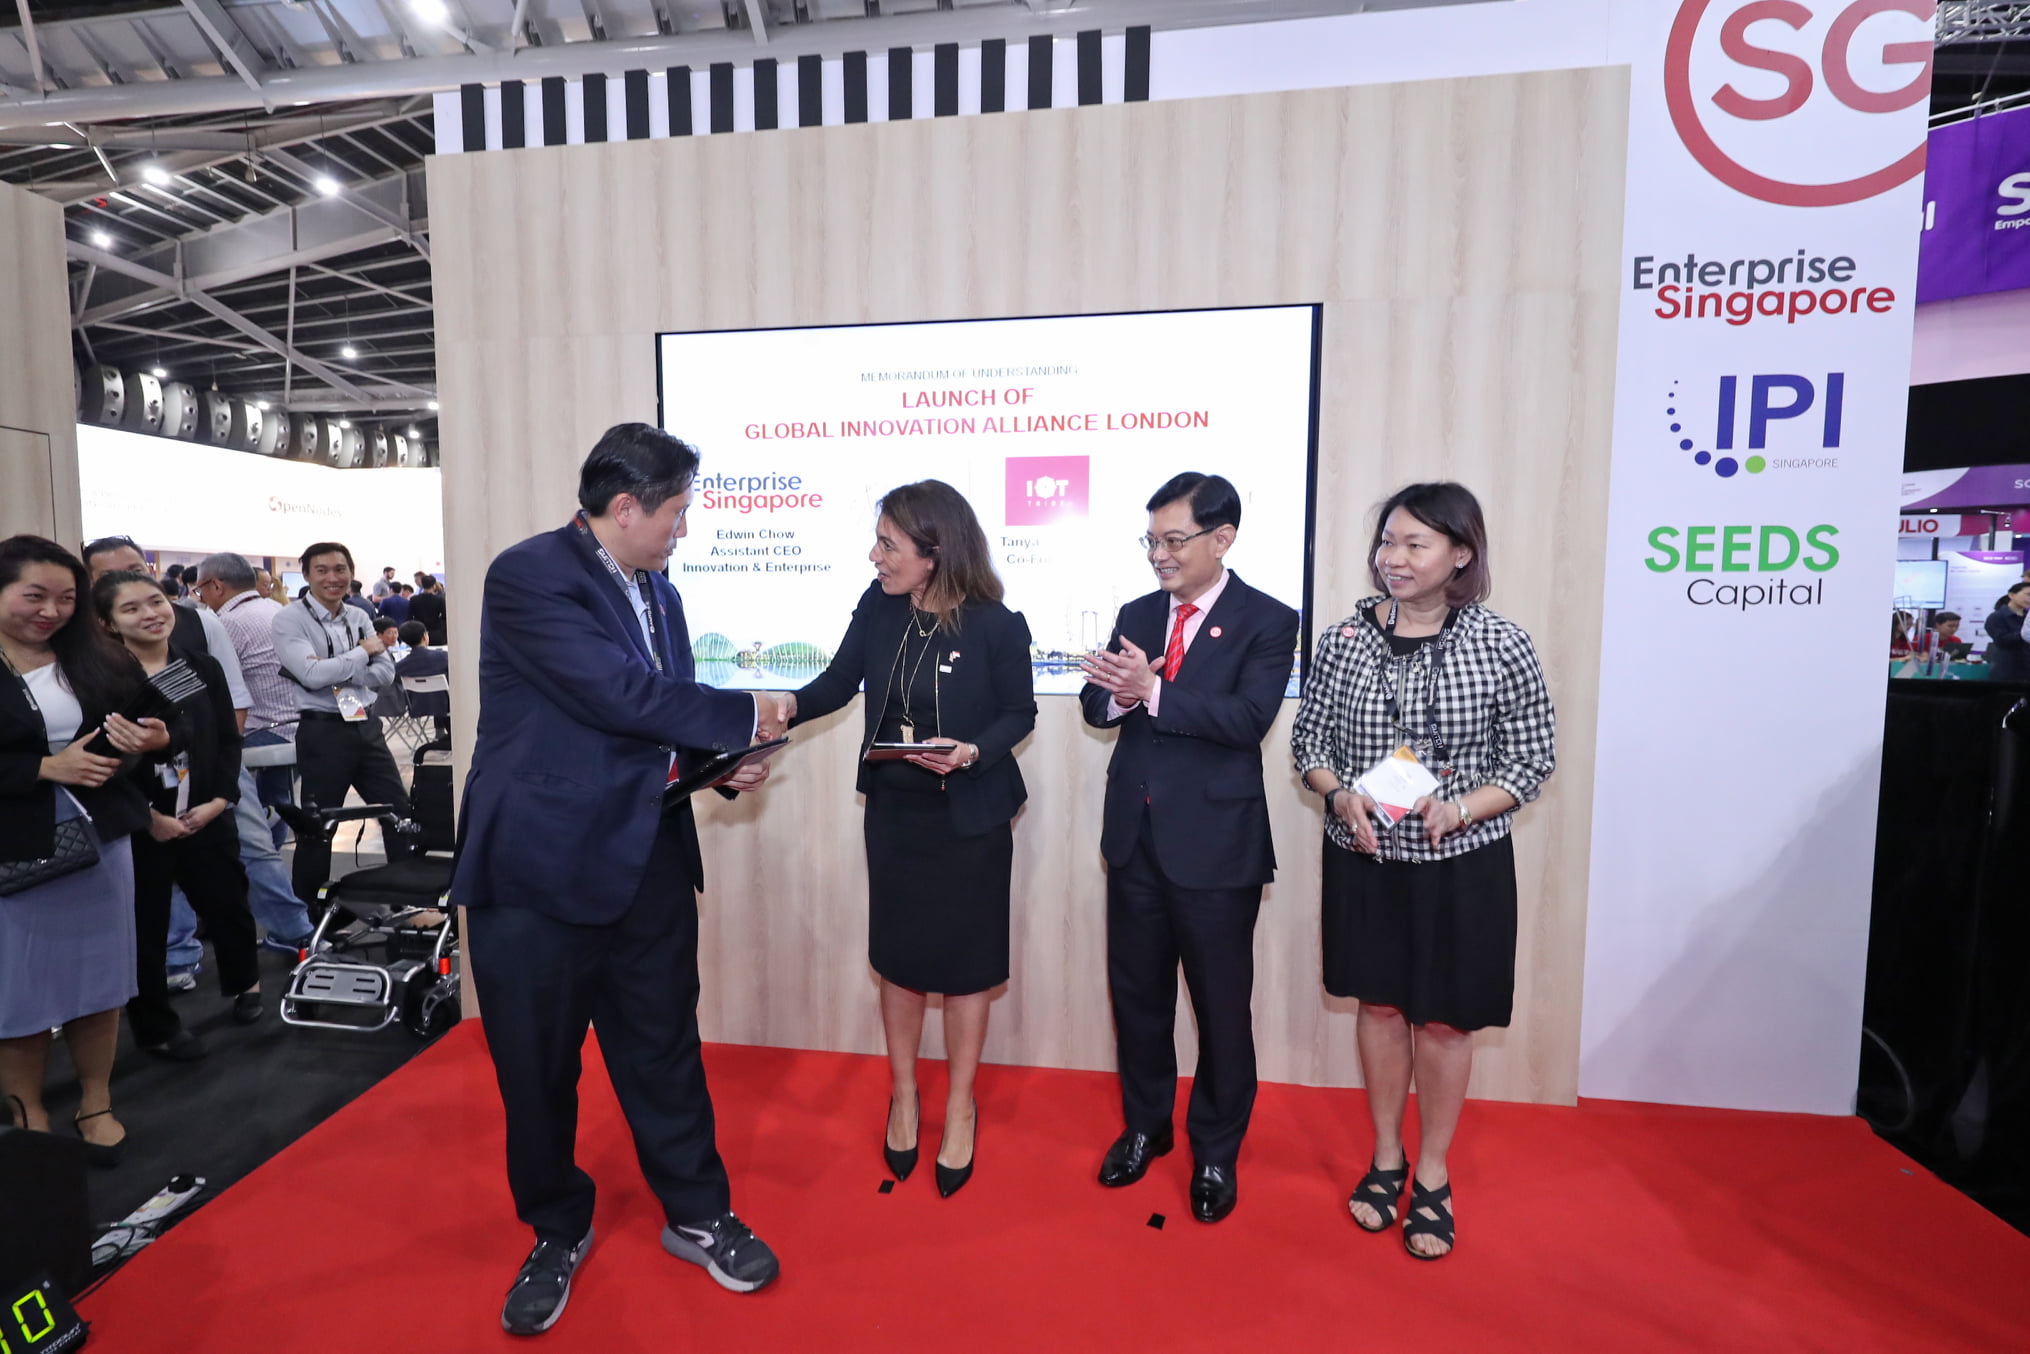 The expansion of Global Innovation Alliance (GIA) will plug Singapore technology startups and SMEs into the innovation ecosystem in the UK through London, as well as support UK-based startups to scale up in Asia by using Singapore as a springboard, said DPM Heng Swee Keat. Photo courtesy: MCI Clement